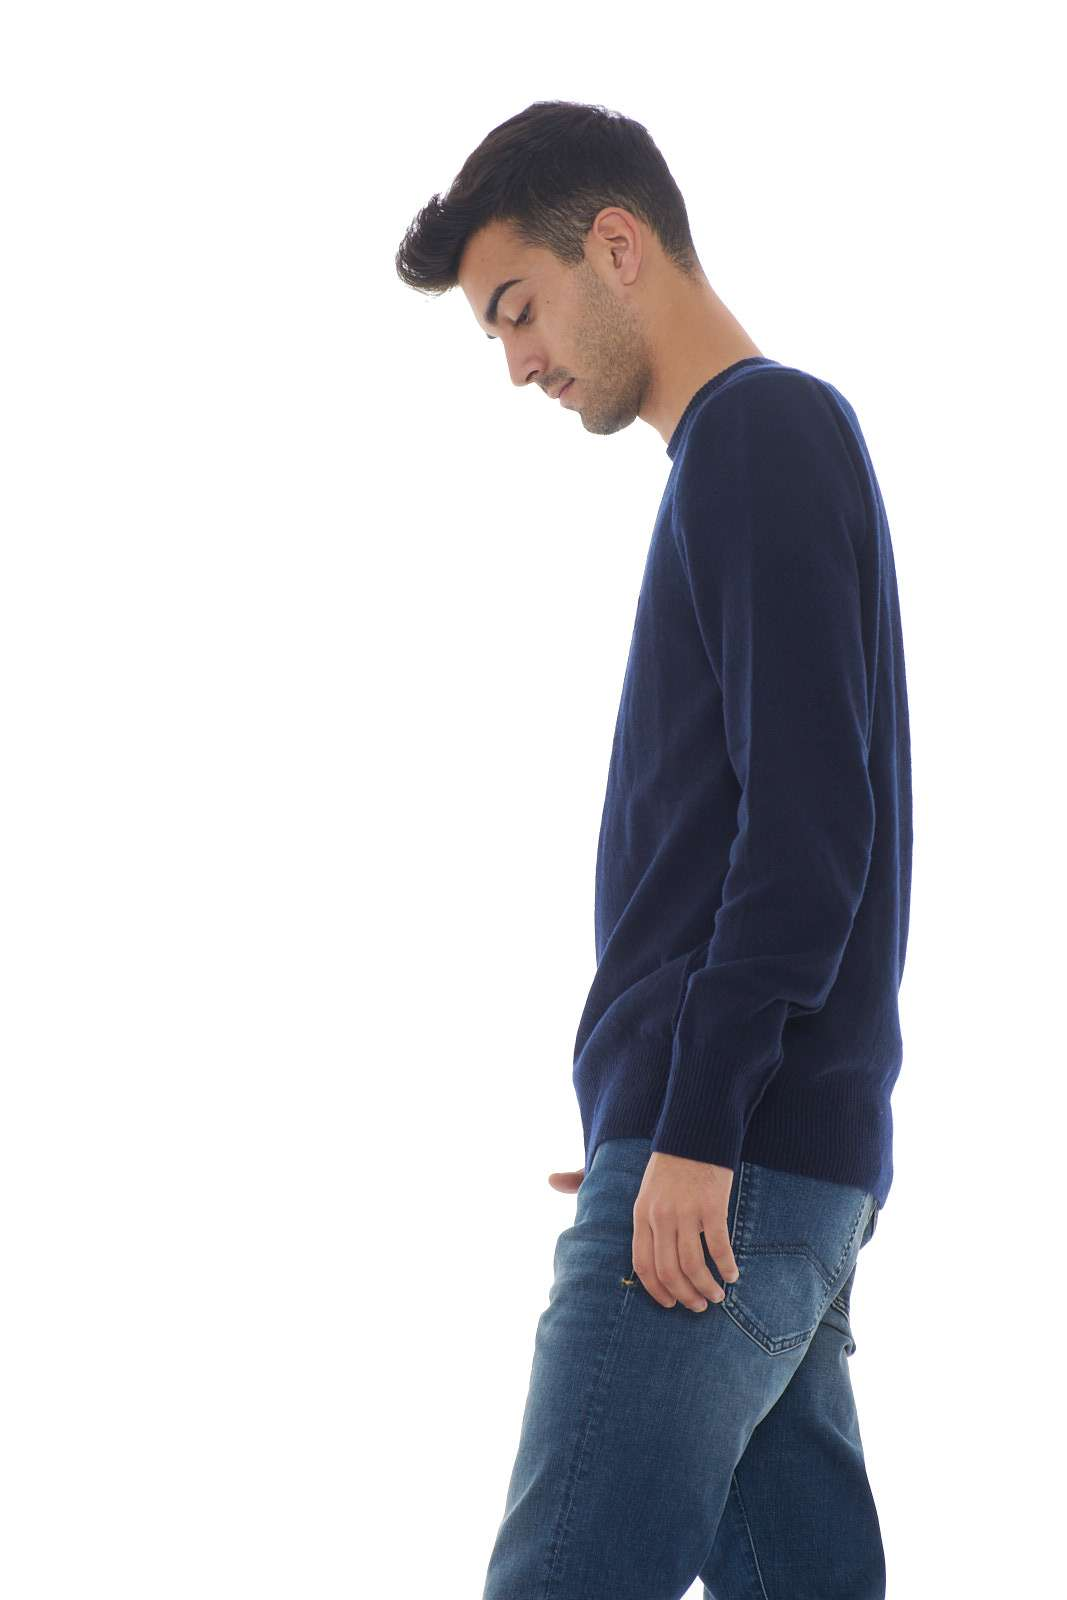 https://www.parmax.com/media/catalog/product/a/i/AI-outlet_parmax-maglia-uomo-Woolrich-WOMAG1884-B.jpg